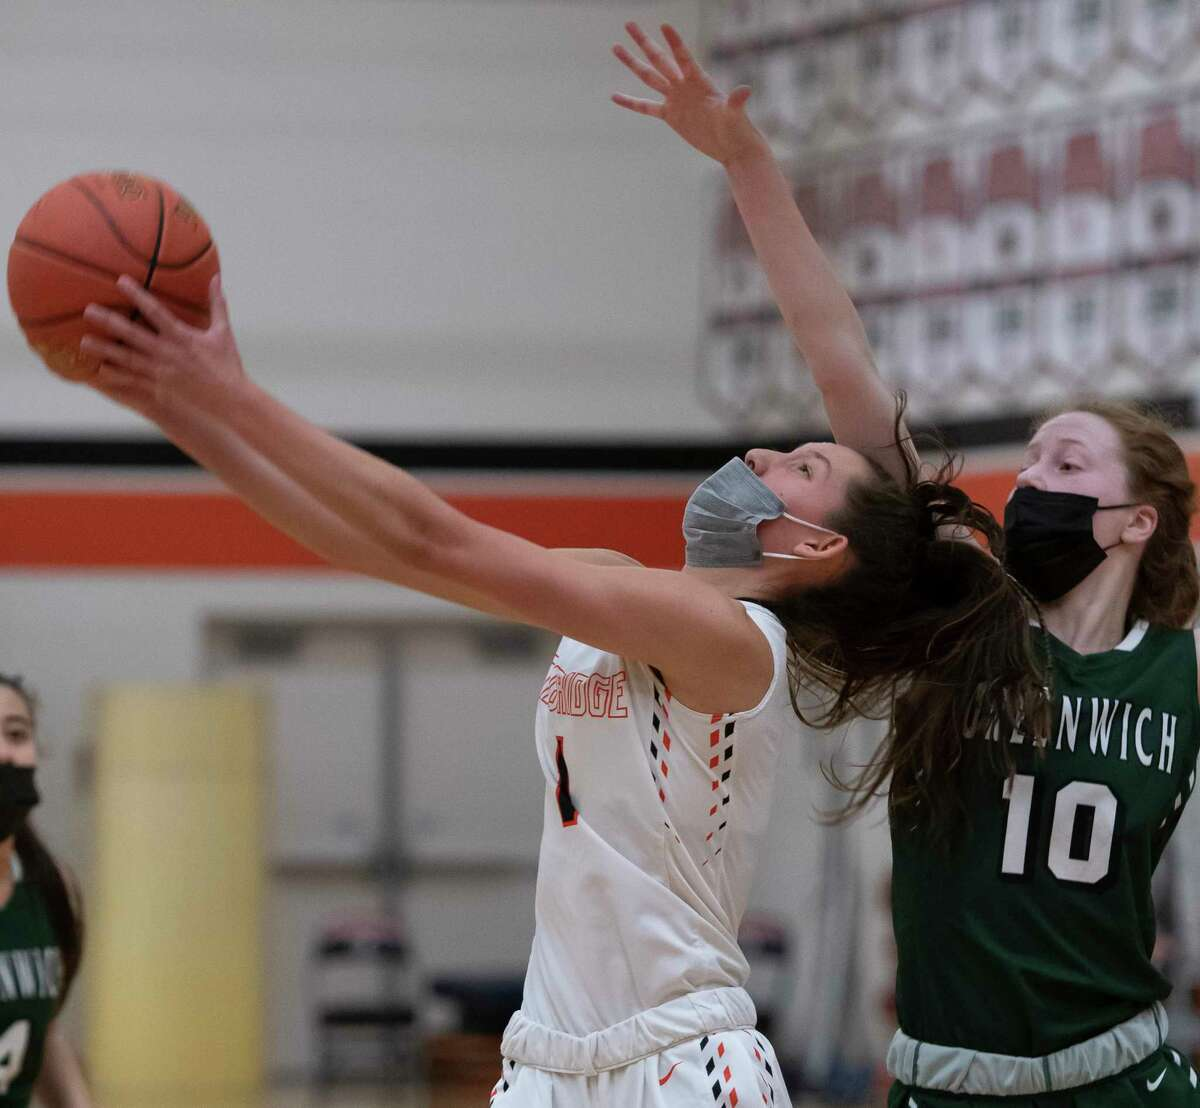 Cambridge's Lilly Phillips, left, is defended by Greenwich's Molly Brophy, both members of the Times Union Small-School Girls' Basketball all-star team. (Jenn March, Special to the Times Union)